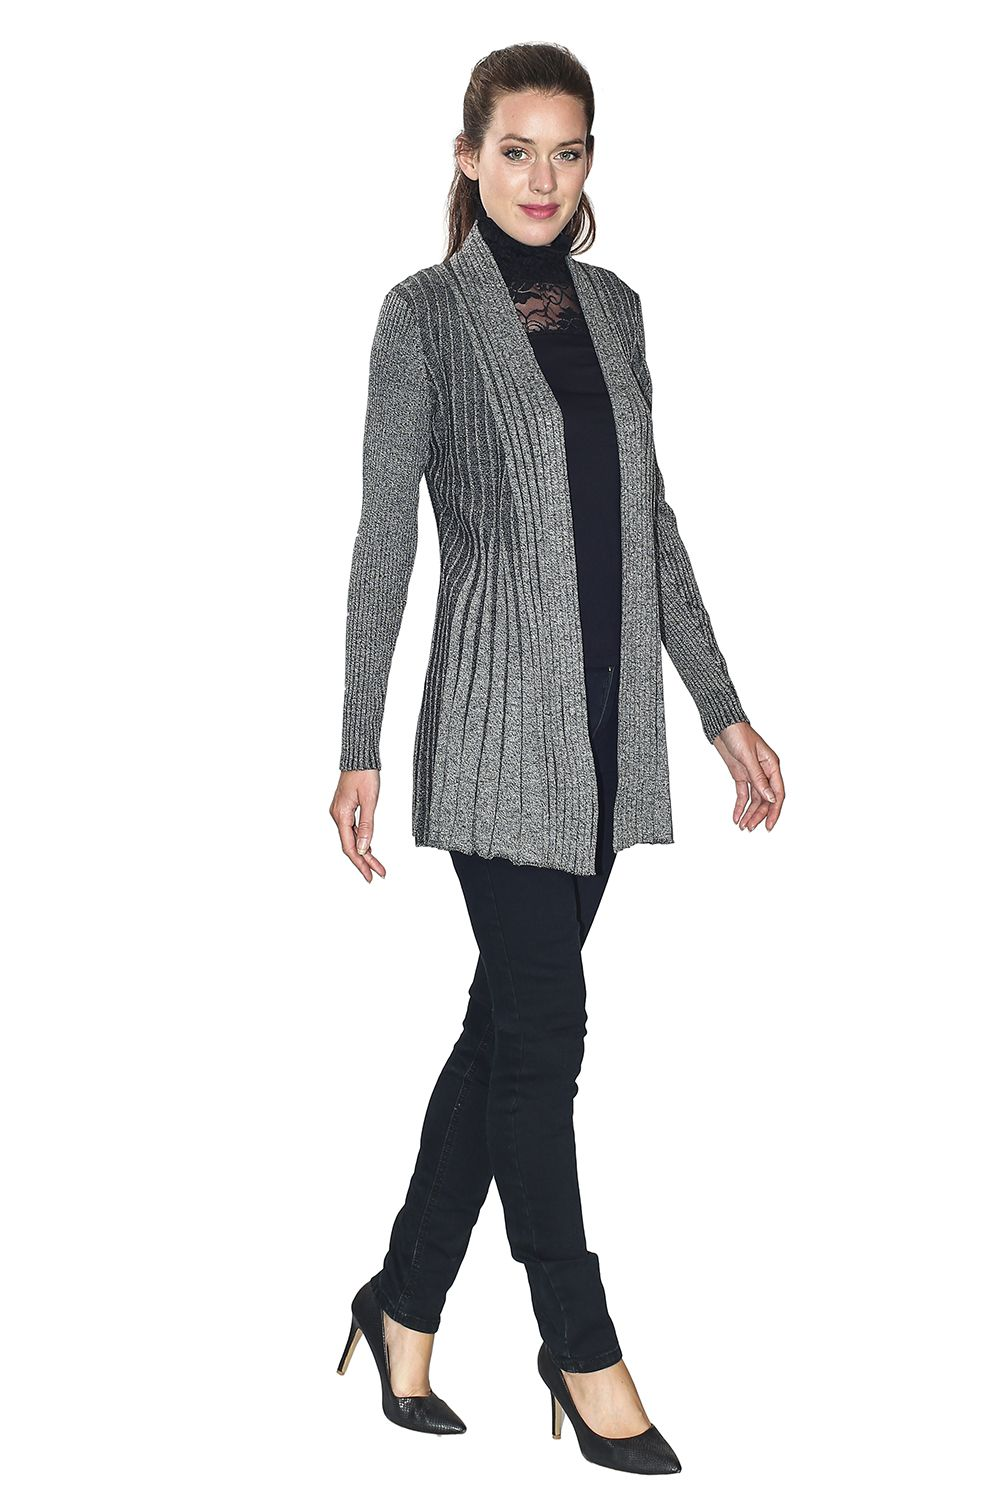 Assuili Long Sleeve Textured Mesh Open Cardigan (Large Fit) in Black